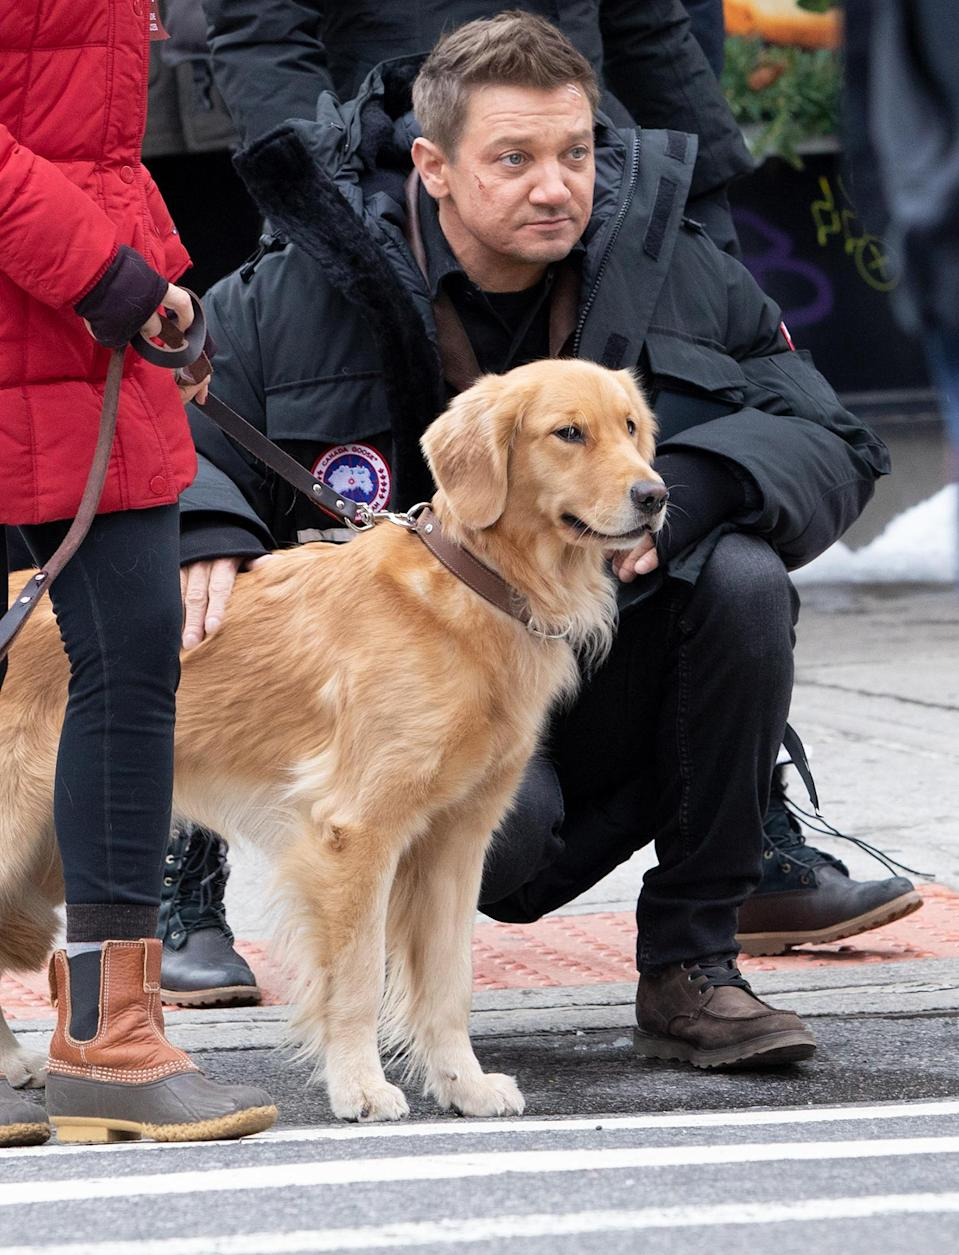 <p>Jeremy Renner poses with a sweet Golden Retriever on the set of <em>Hawkeye</em> on Tuesday in N.Y.C.</p>